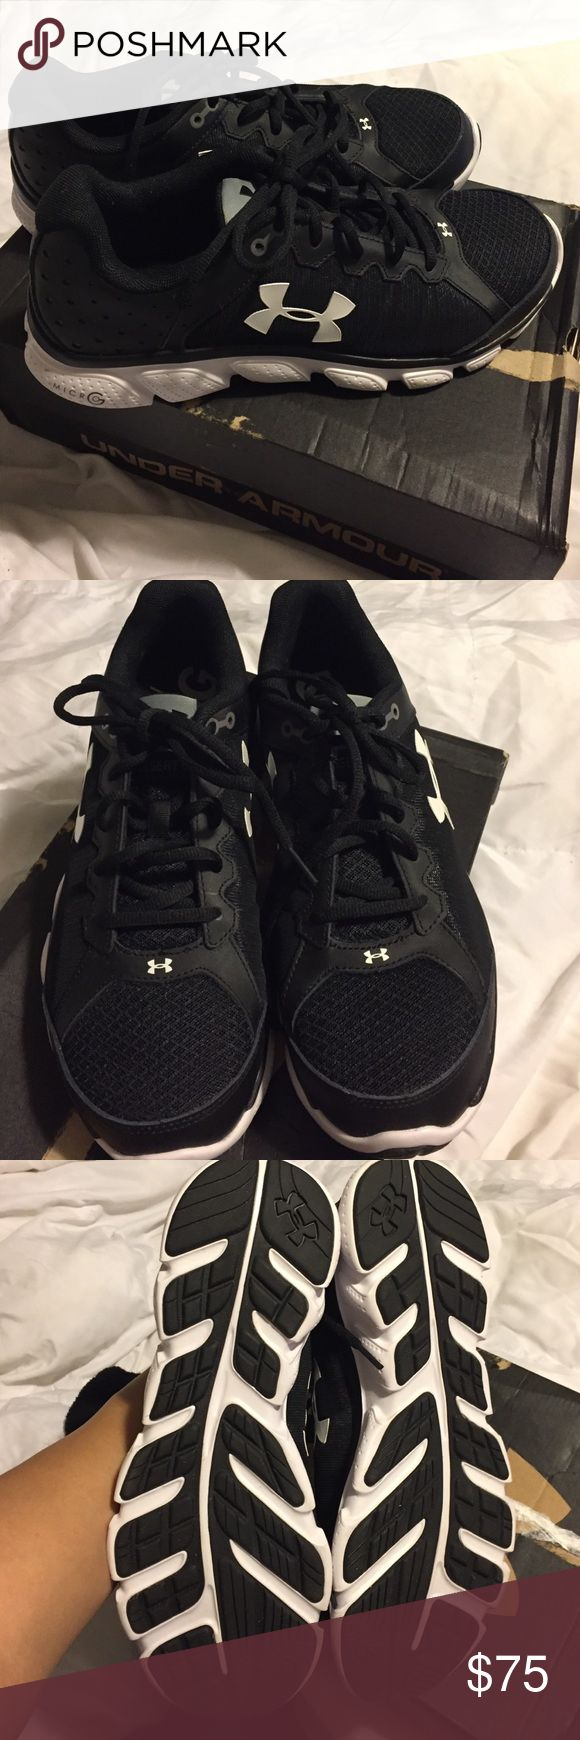 New under armour tennis shoes 10 wide New under armour tennis shoes. Size 10 wide Under Armour Shoes Sneakers